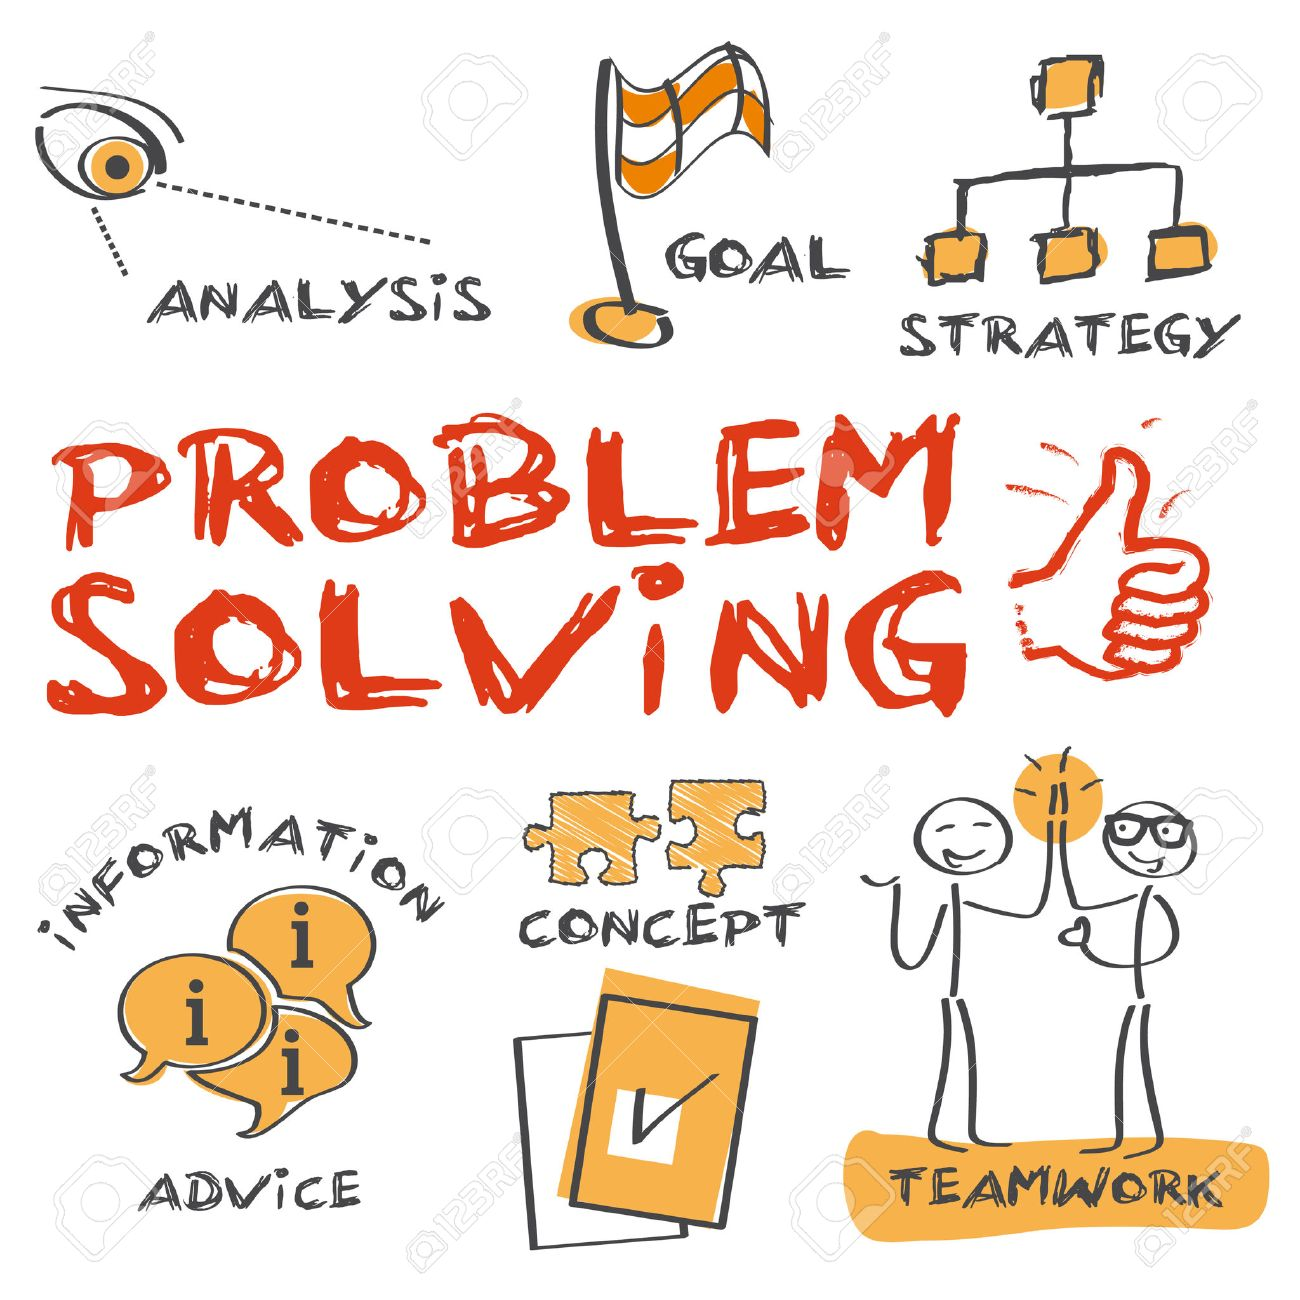 problem solving concept sketch with keywords and icons royalty free